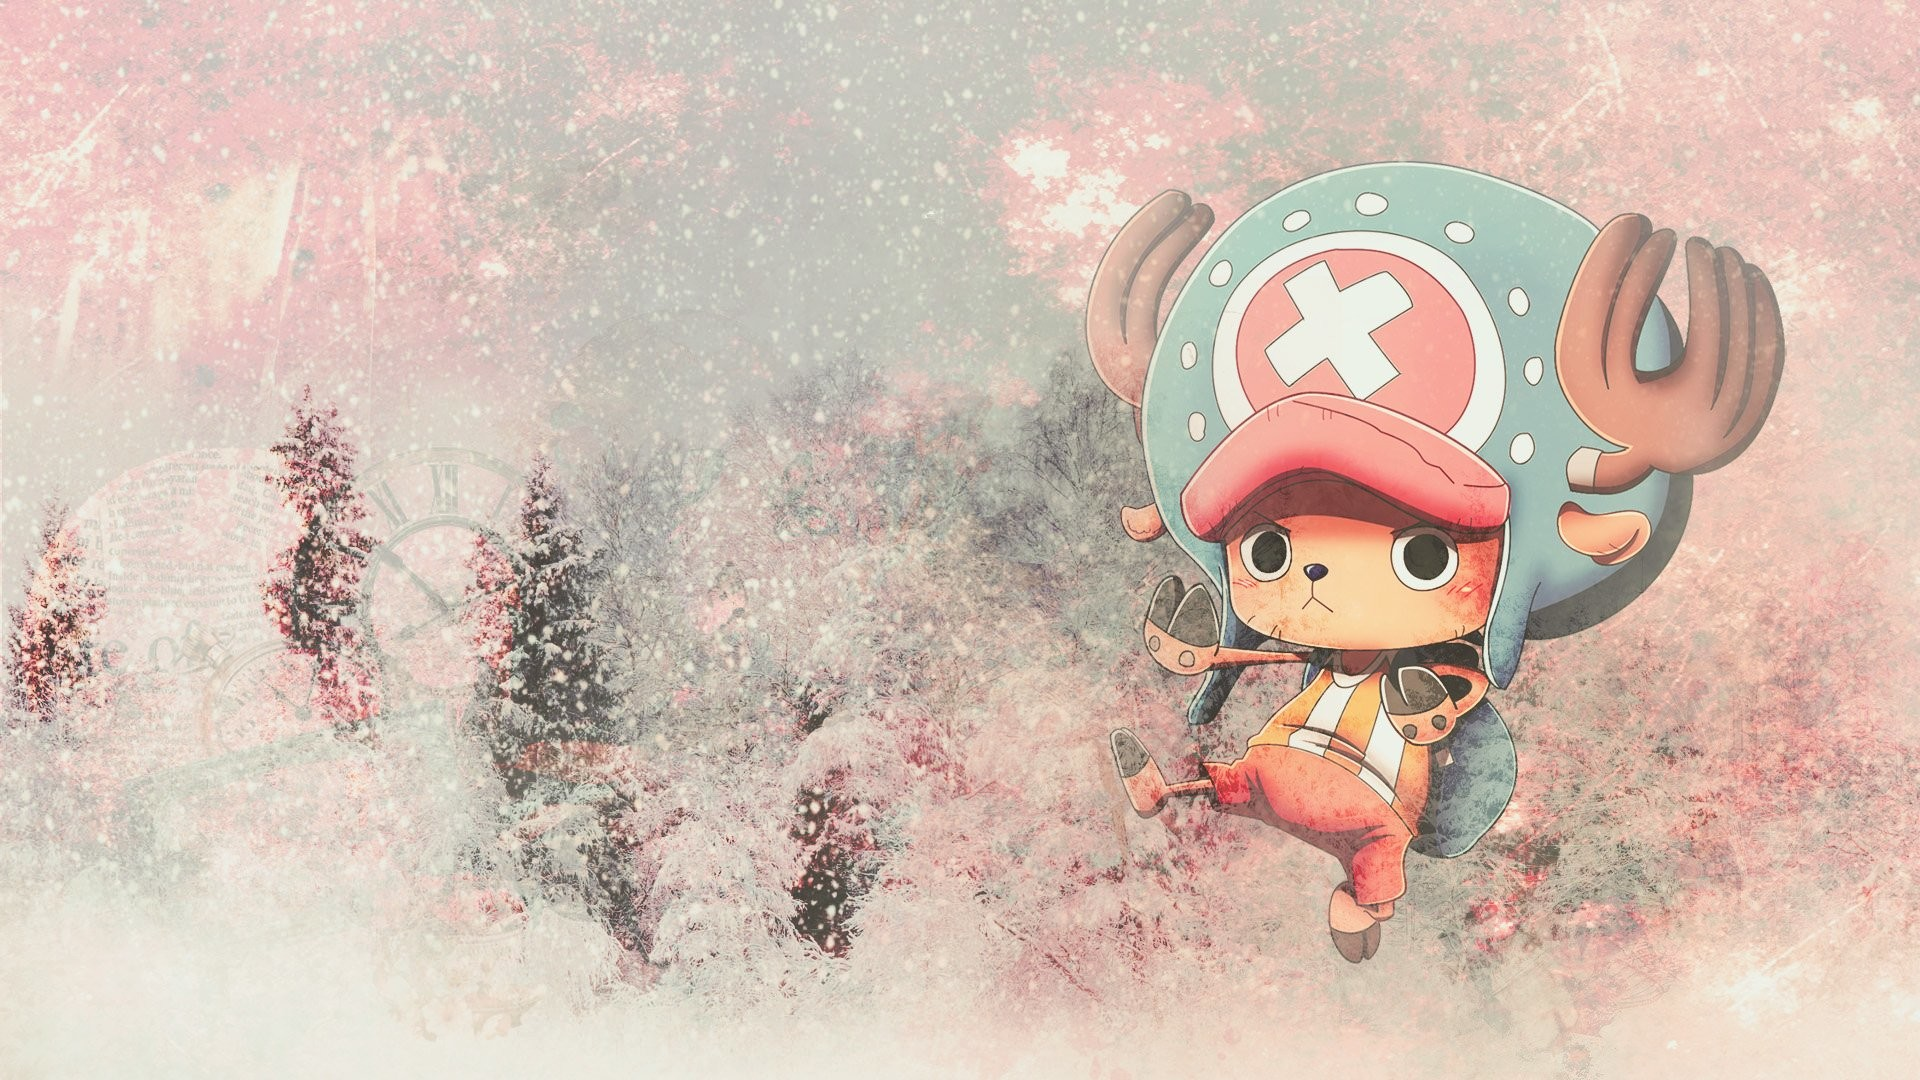 Tony Tony Chopper Wallpapers 66 Pictures